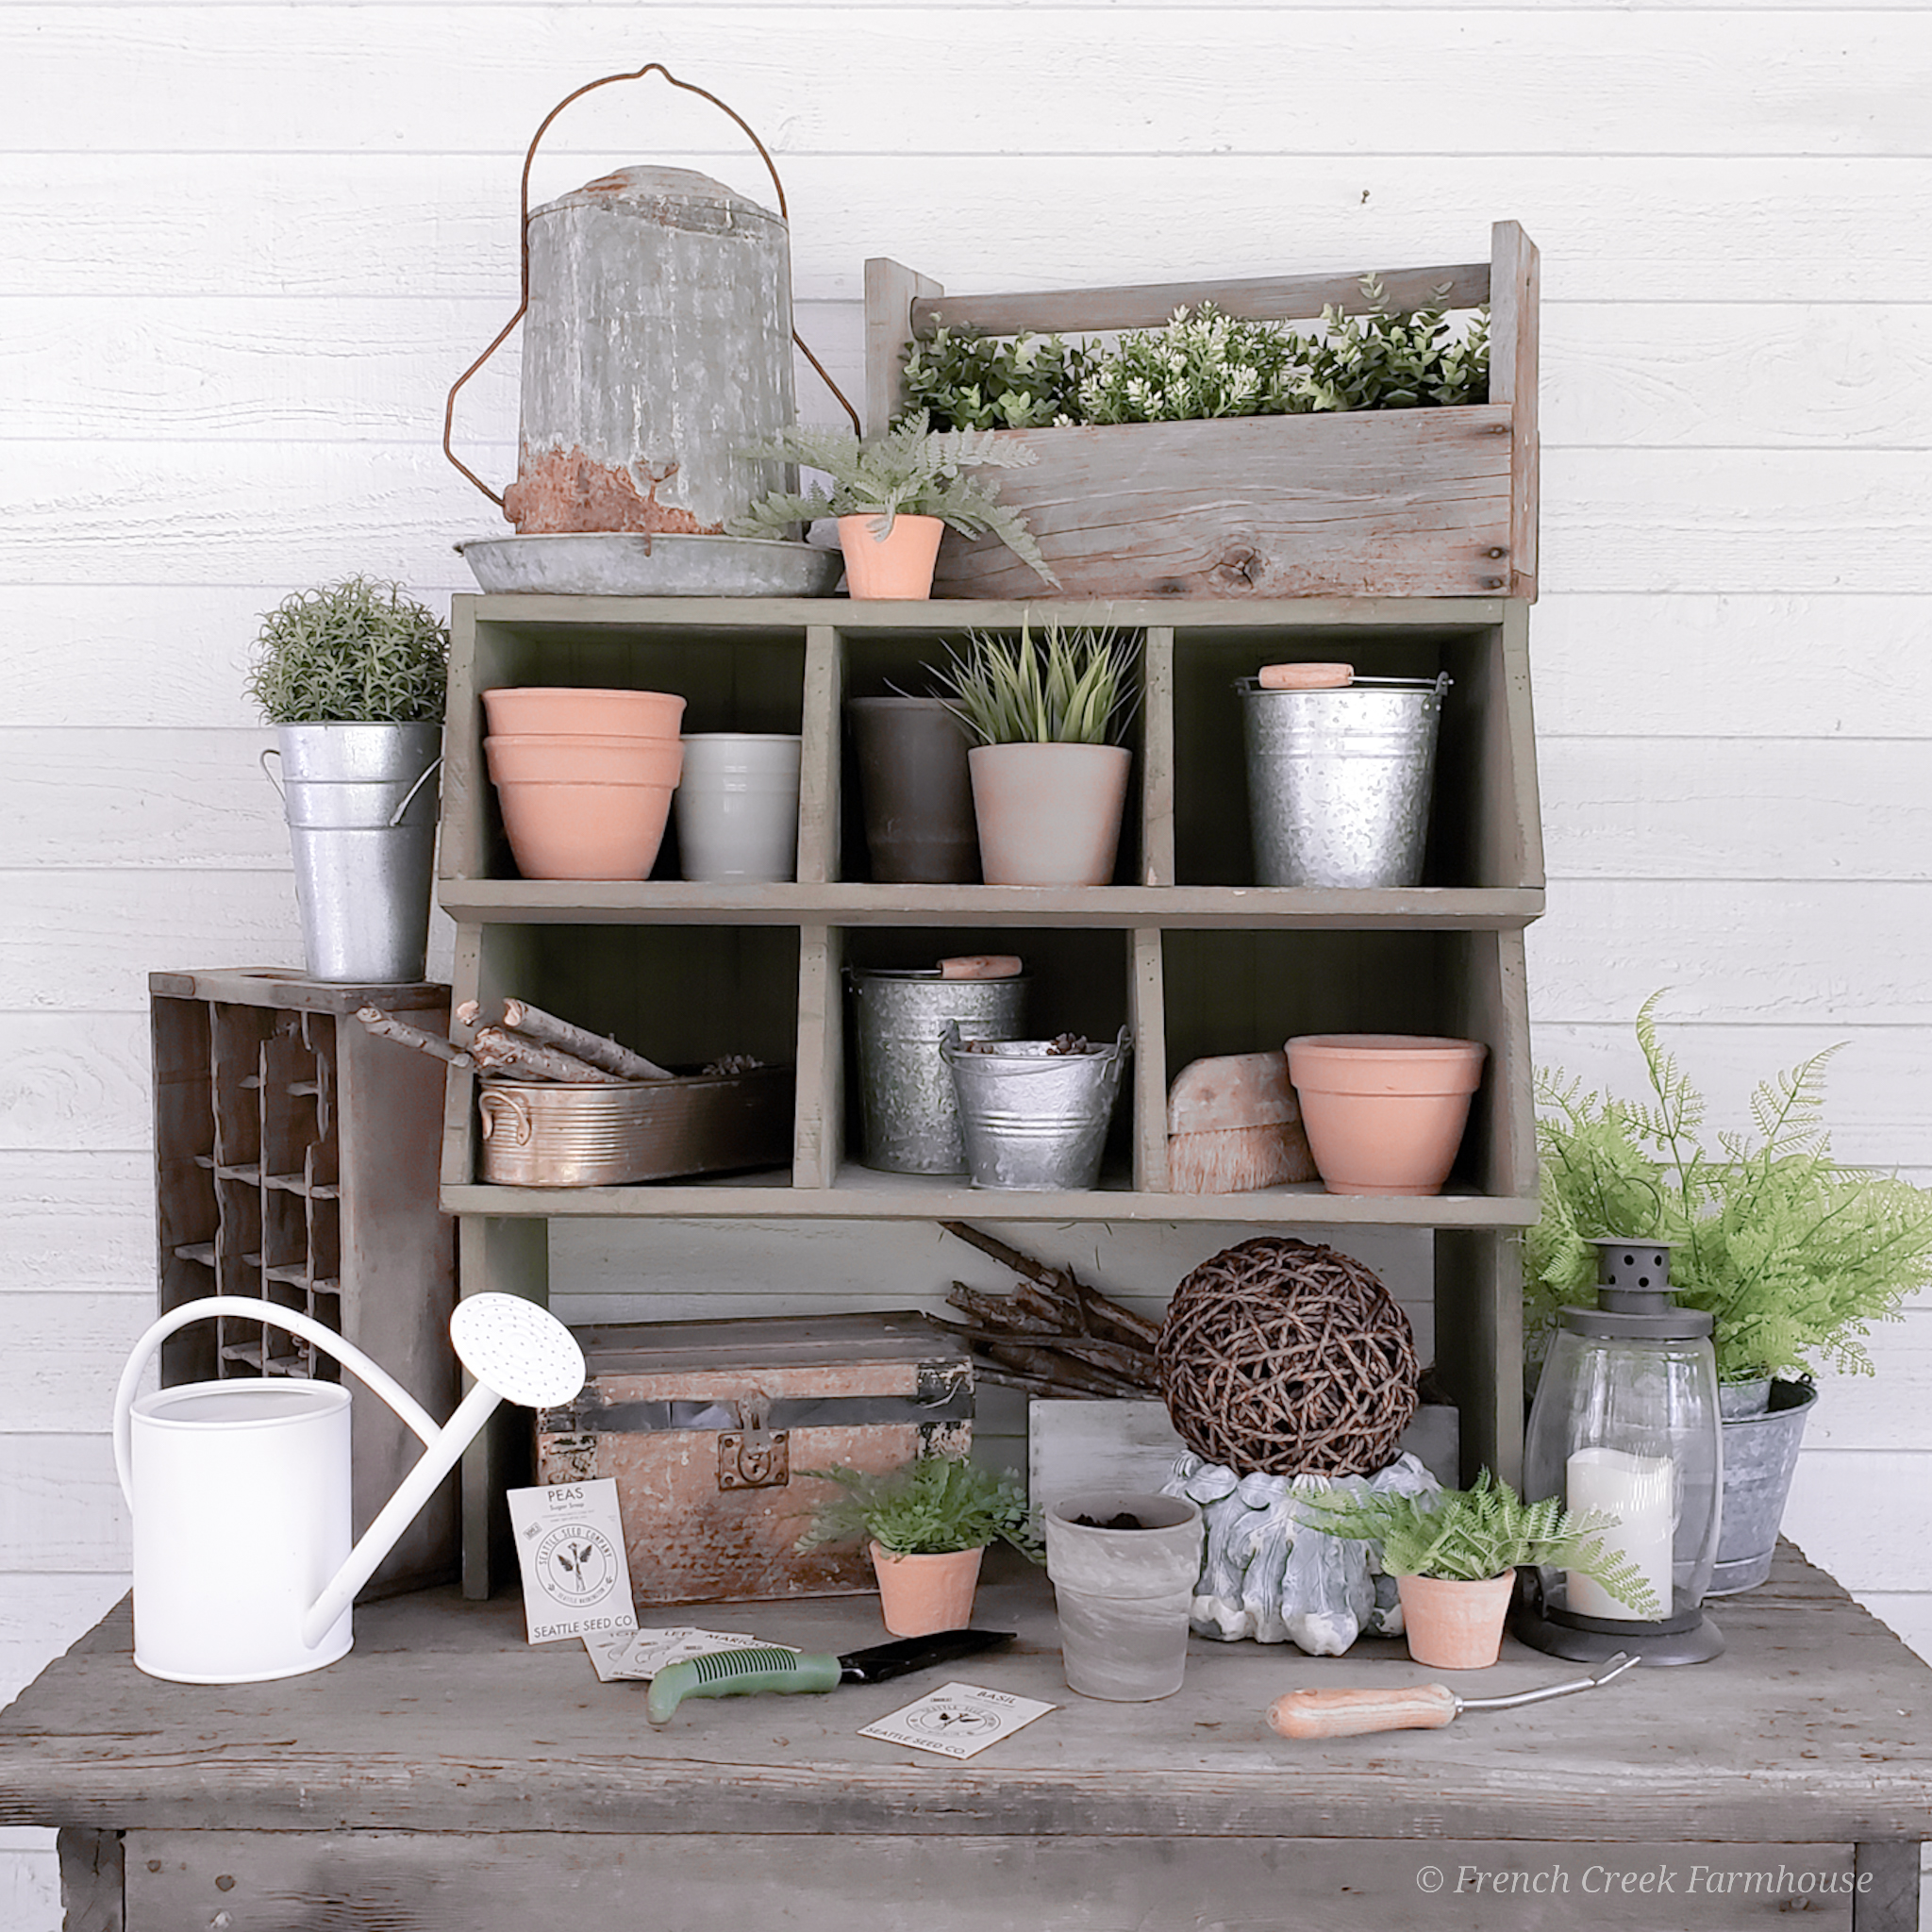 I combined a rustic wood table with a chicken nesting box to create our potting bench